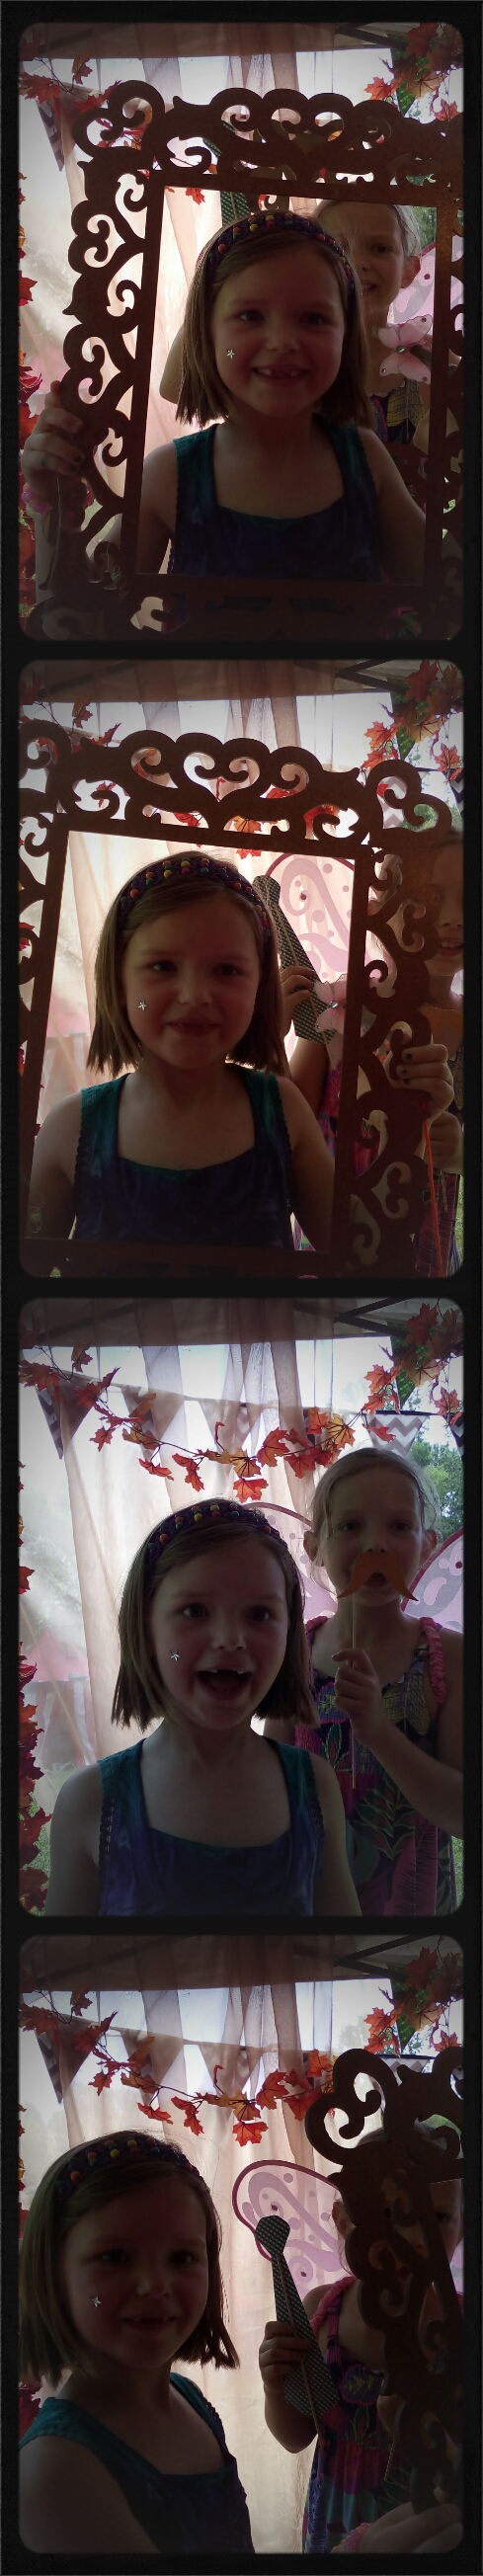 Pocketbooth_20150614120533